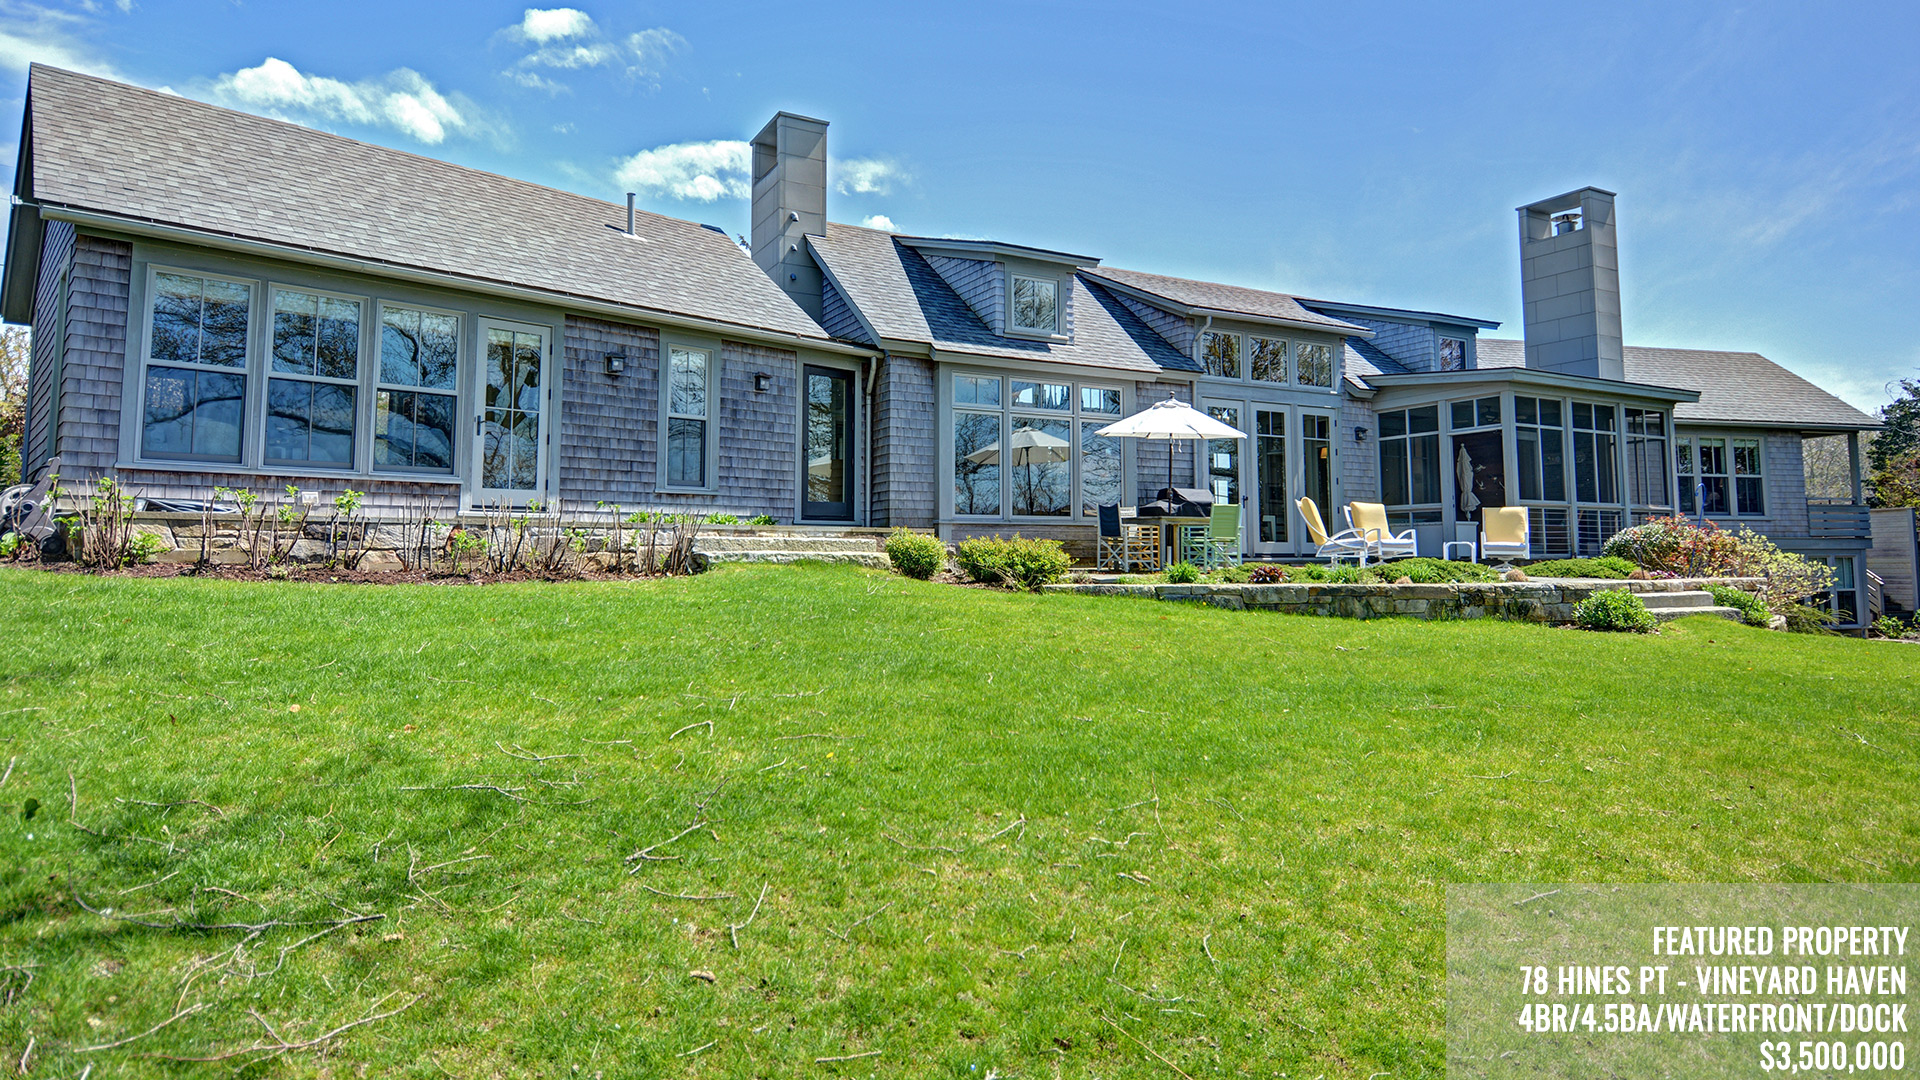 78 Hines Point, Vineyard Haven, Martha's Vineyard